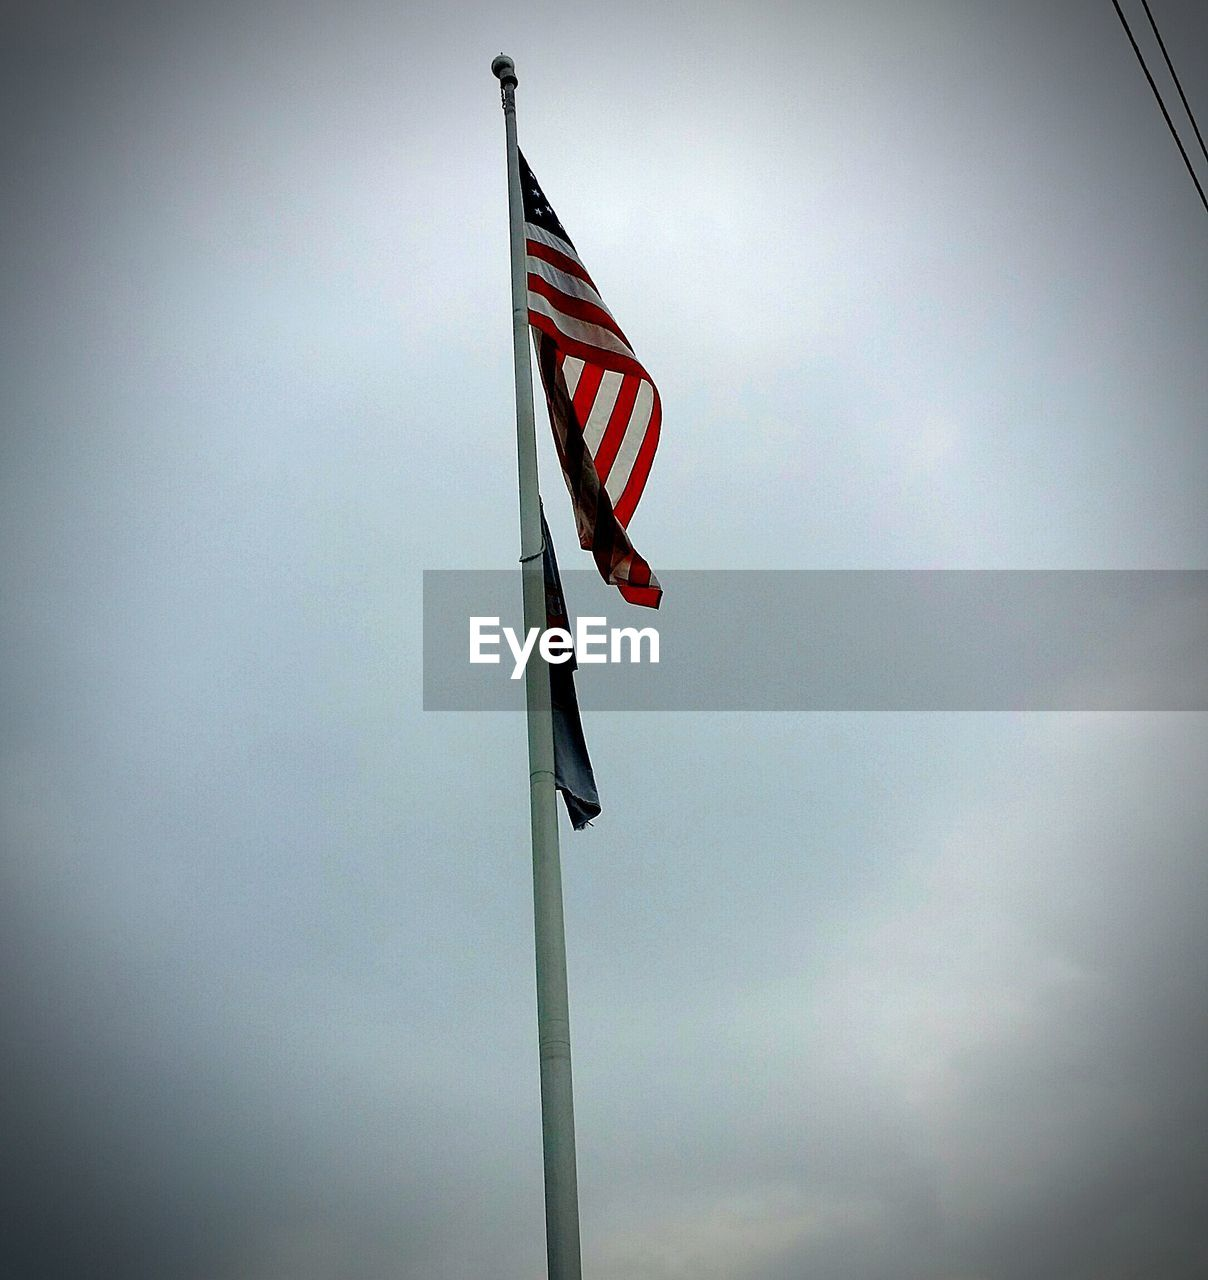 flag, patriotism, low angle view, flag pole, pride, striped, red, no people, stars and stripes, day, outdoors, sky